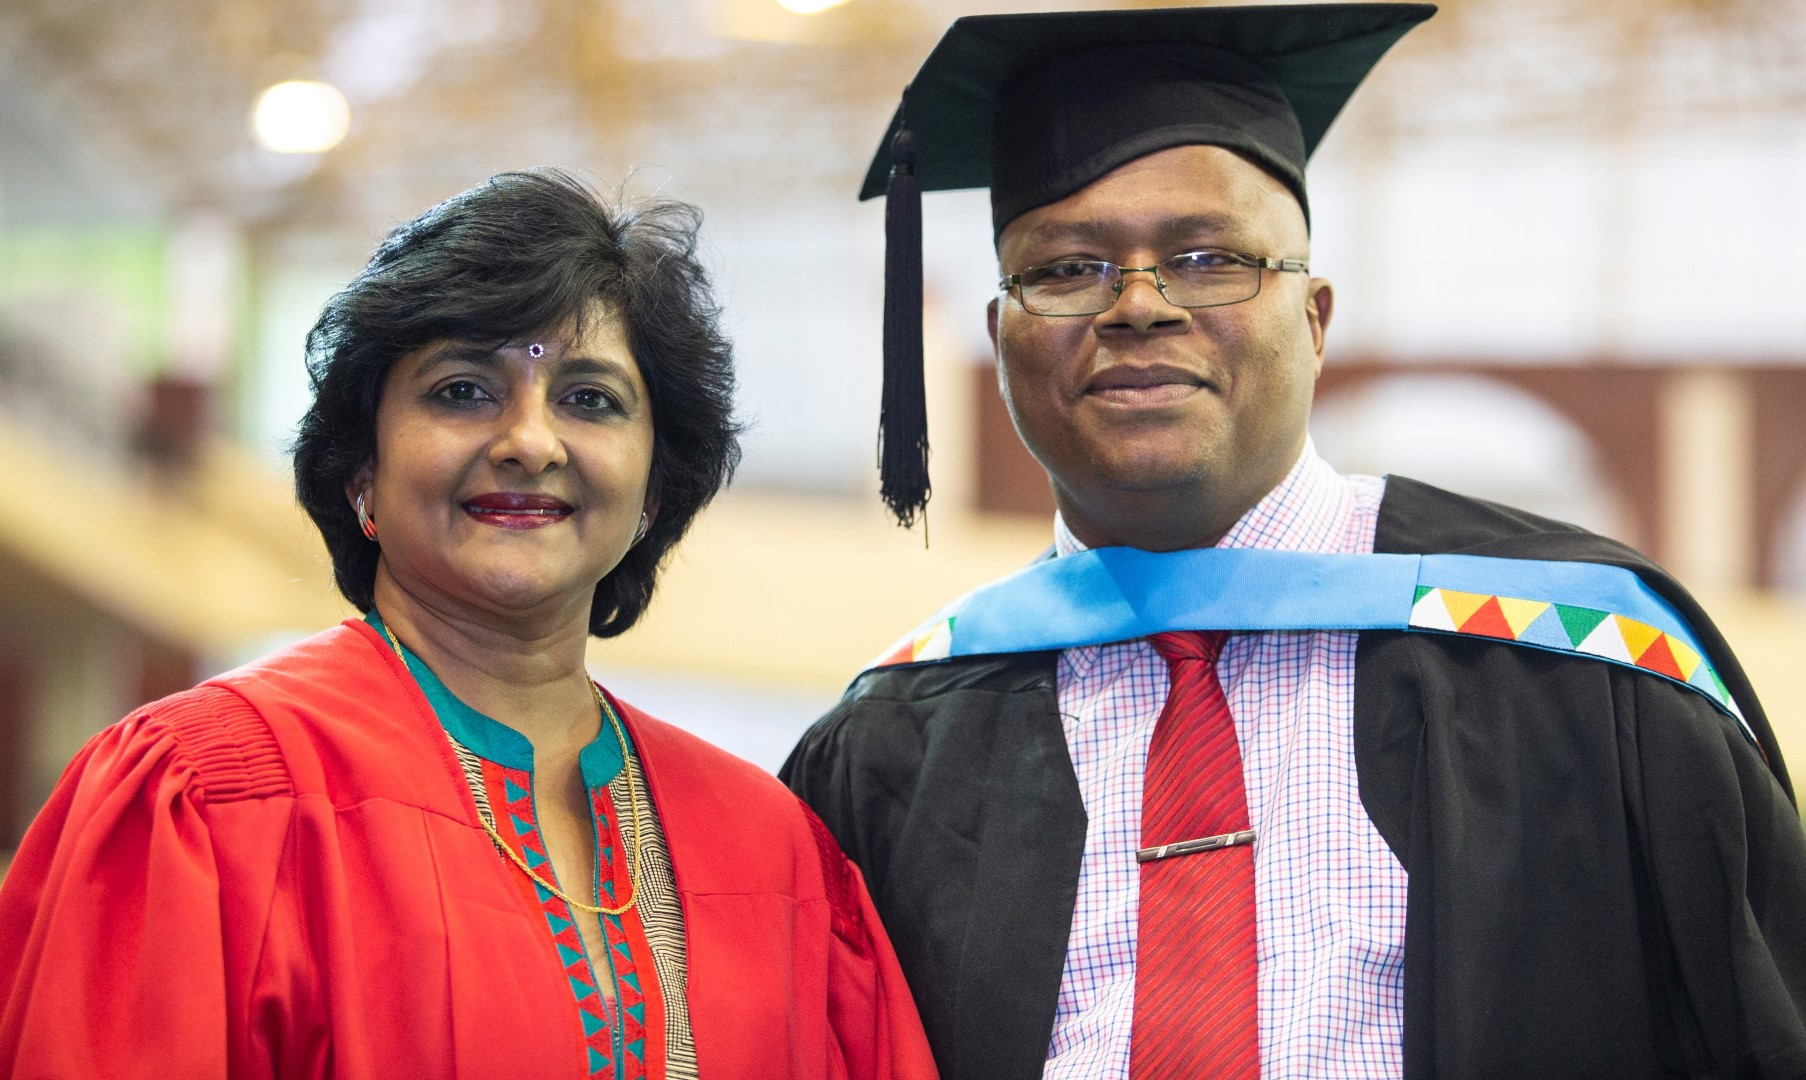 Master's in Education graduate Mr Sylvester Mbatha with his supervisor Dr Jaqueline Naidoo.